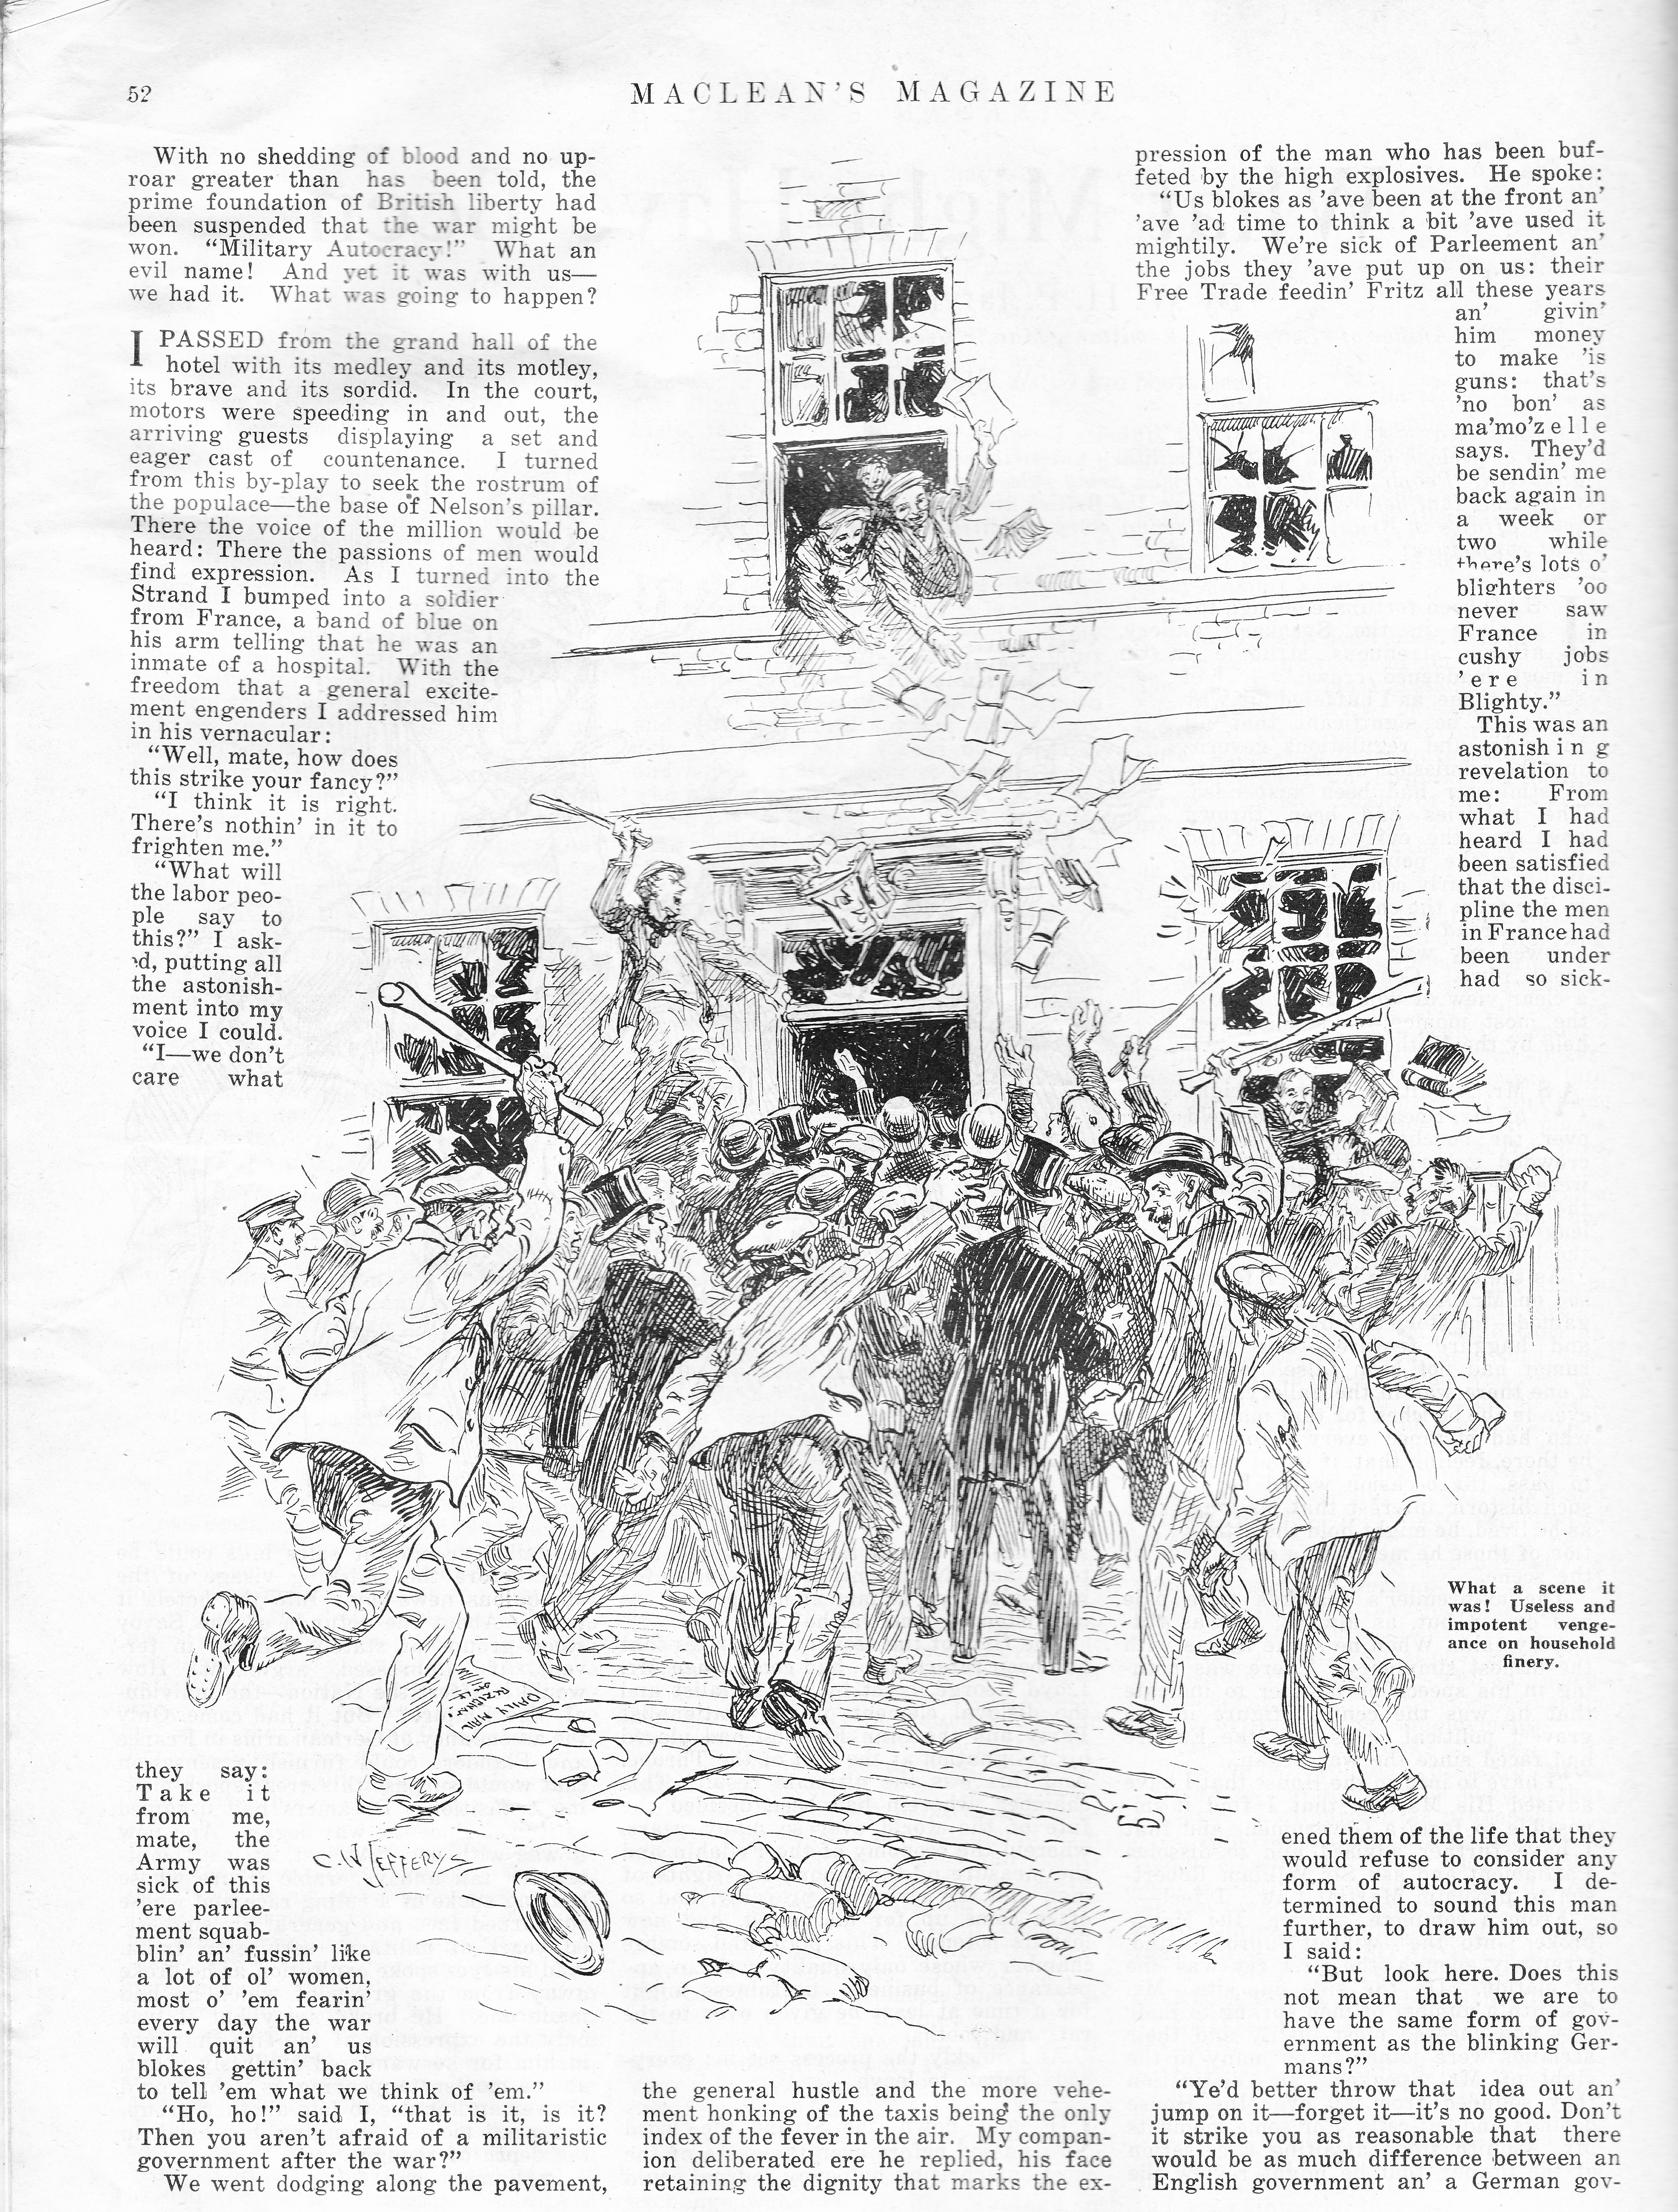 C:\Users\Robert\Documents\CANADIAN CARTOONING ILLUSTRATION and ANIMATION\IMAGE BY CARTOONIST OR ILLUS. J\JEFFERYS C W Maclean's Sept 1918, 52.jpg